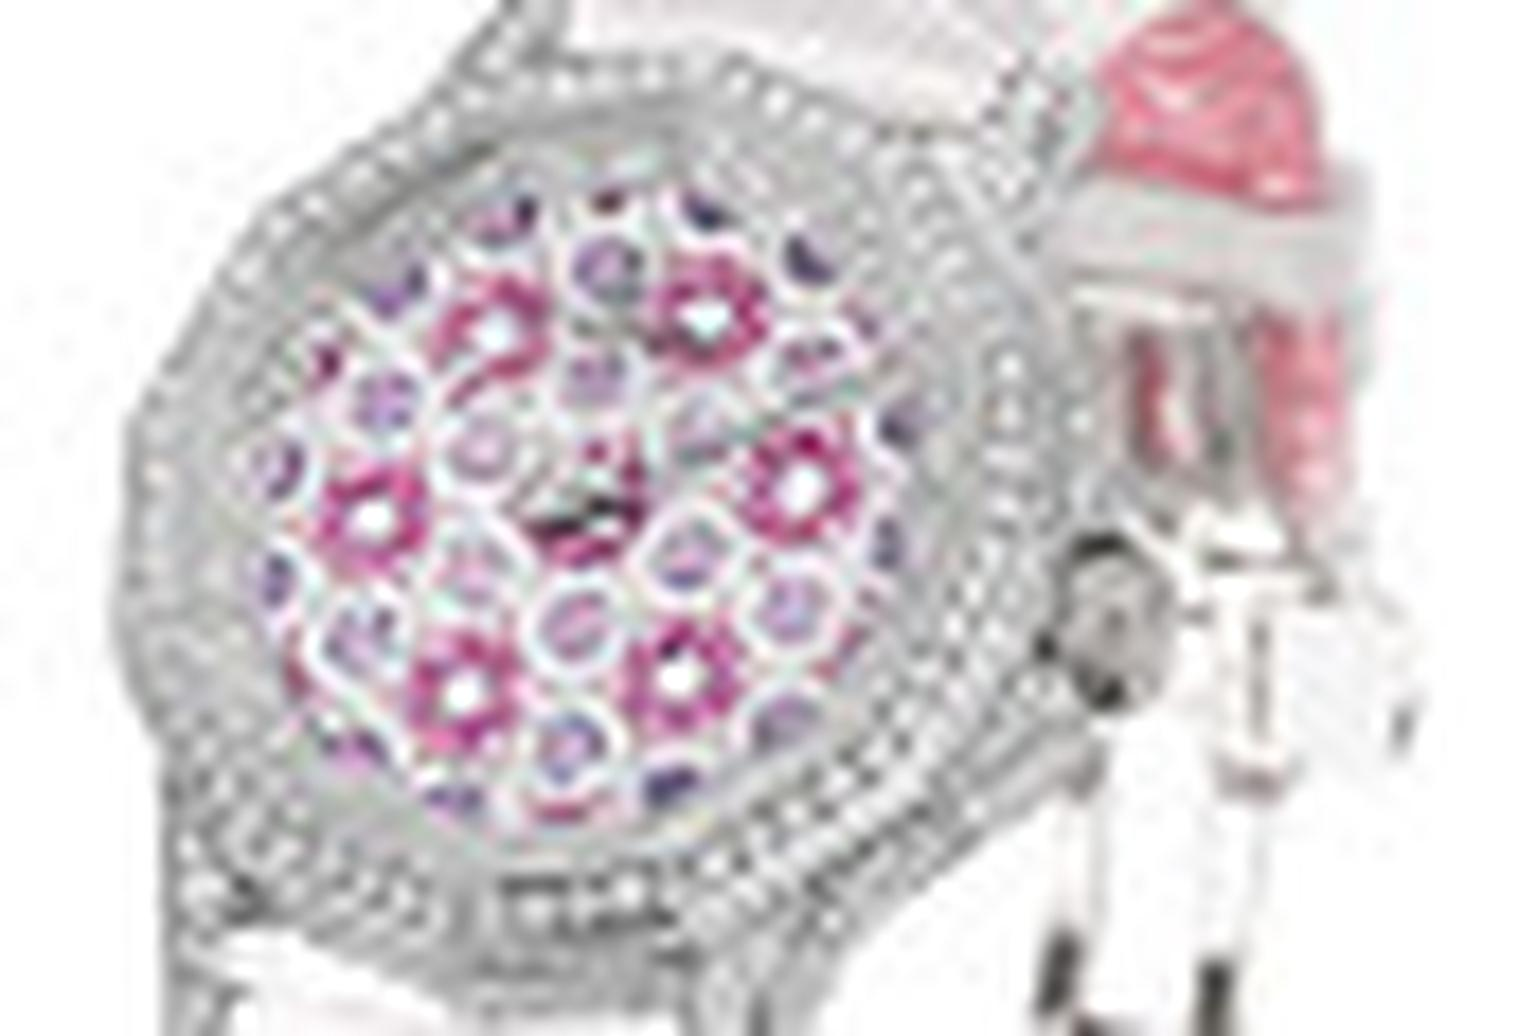 Corum women's jewellery watch